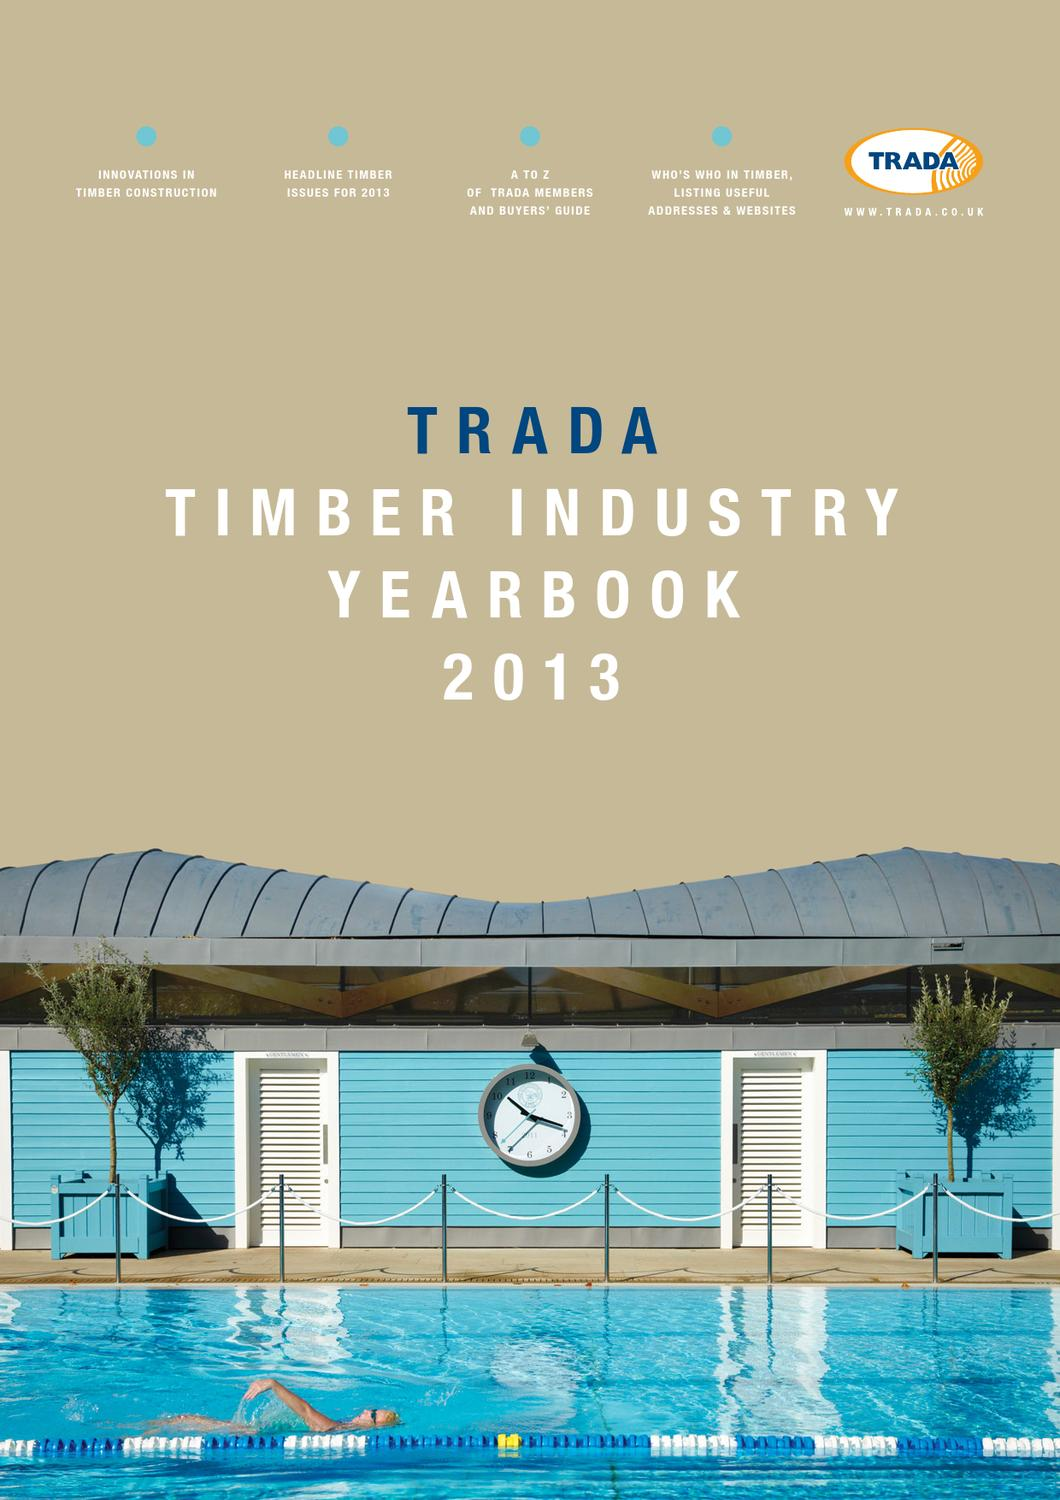 TRADA Timber Industry Yearbook 2013 by Open Box Media